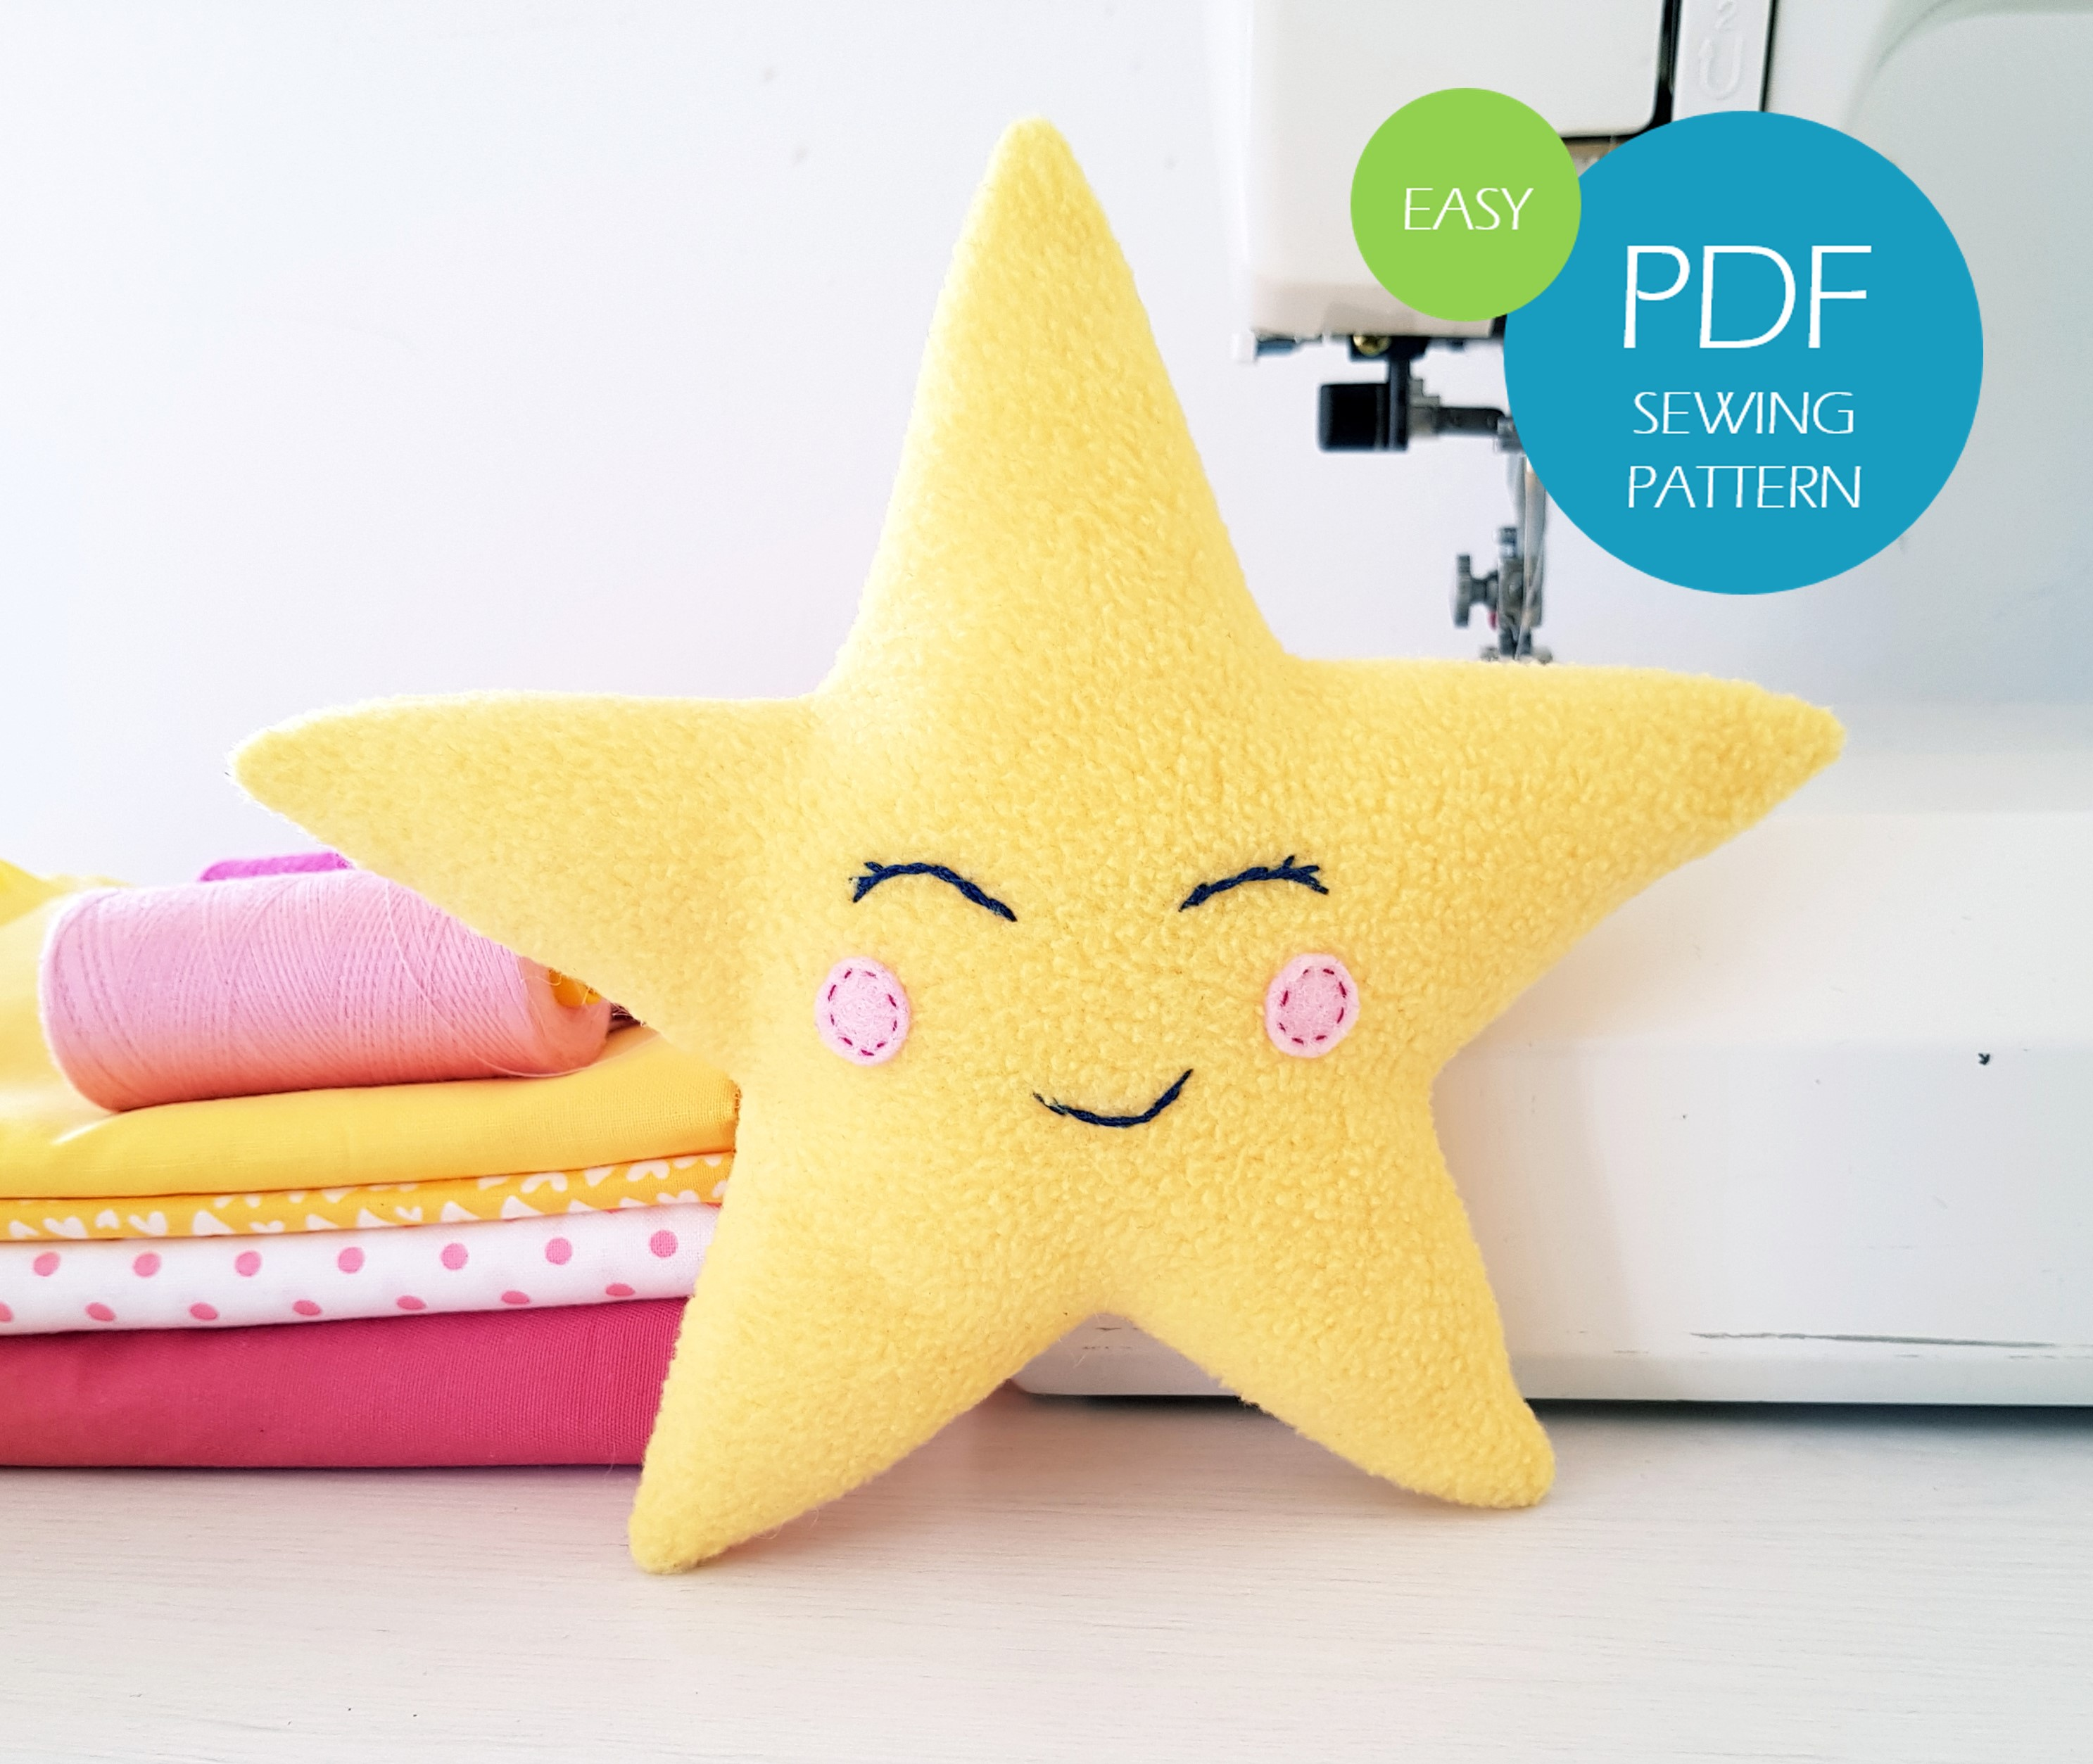 Star sewing pattern easy for beginners instant download_1_DIY